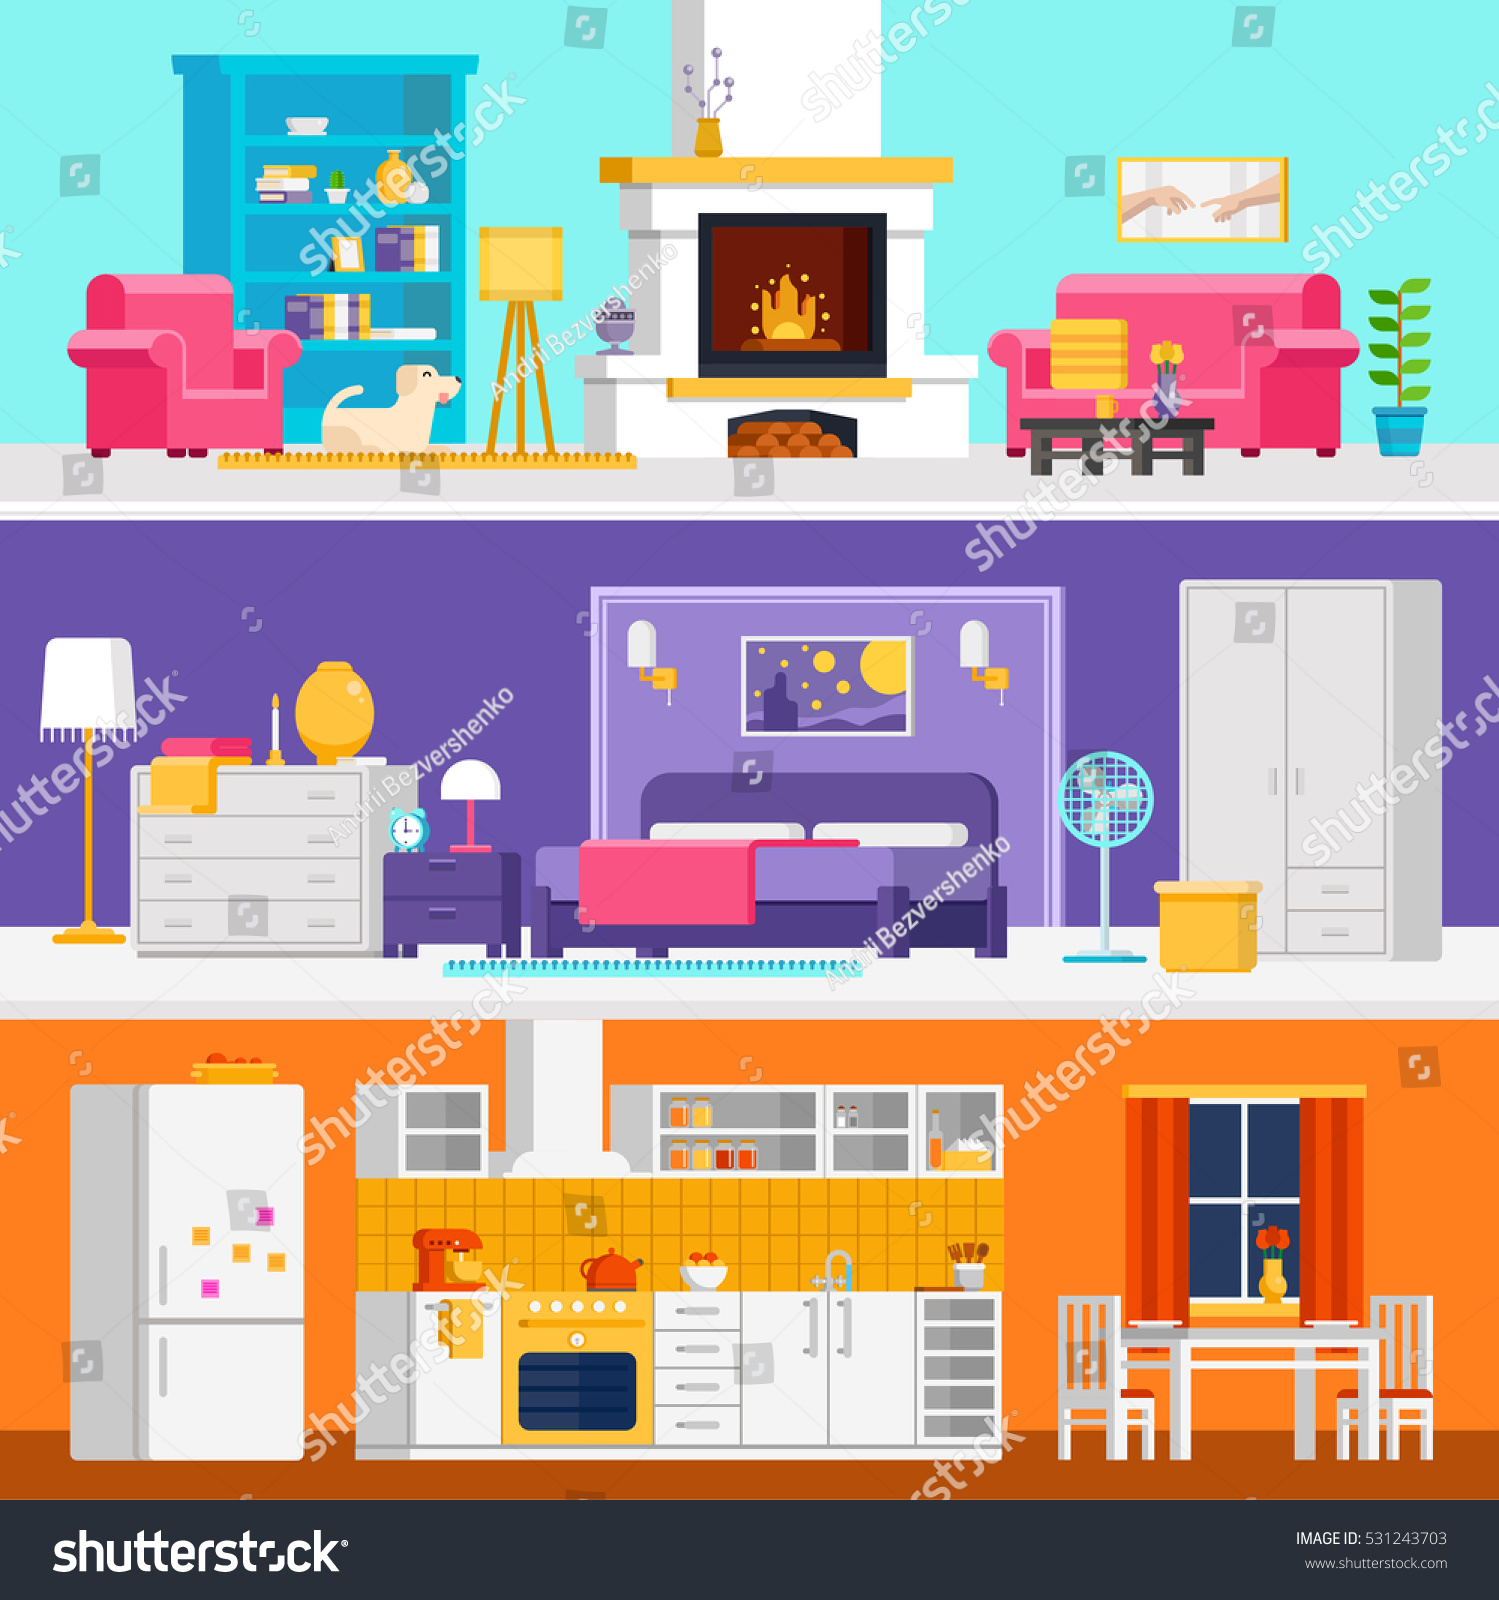 Flat Design Interior Dining Room Vector Illustration Stock: Three Colorful Flat Rooms Vector Illustrations Stock